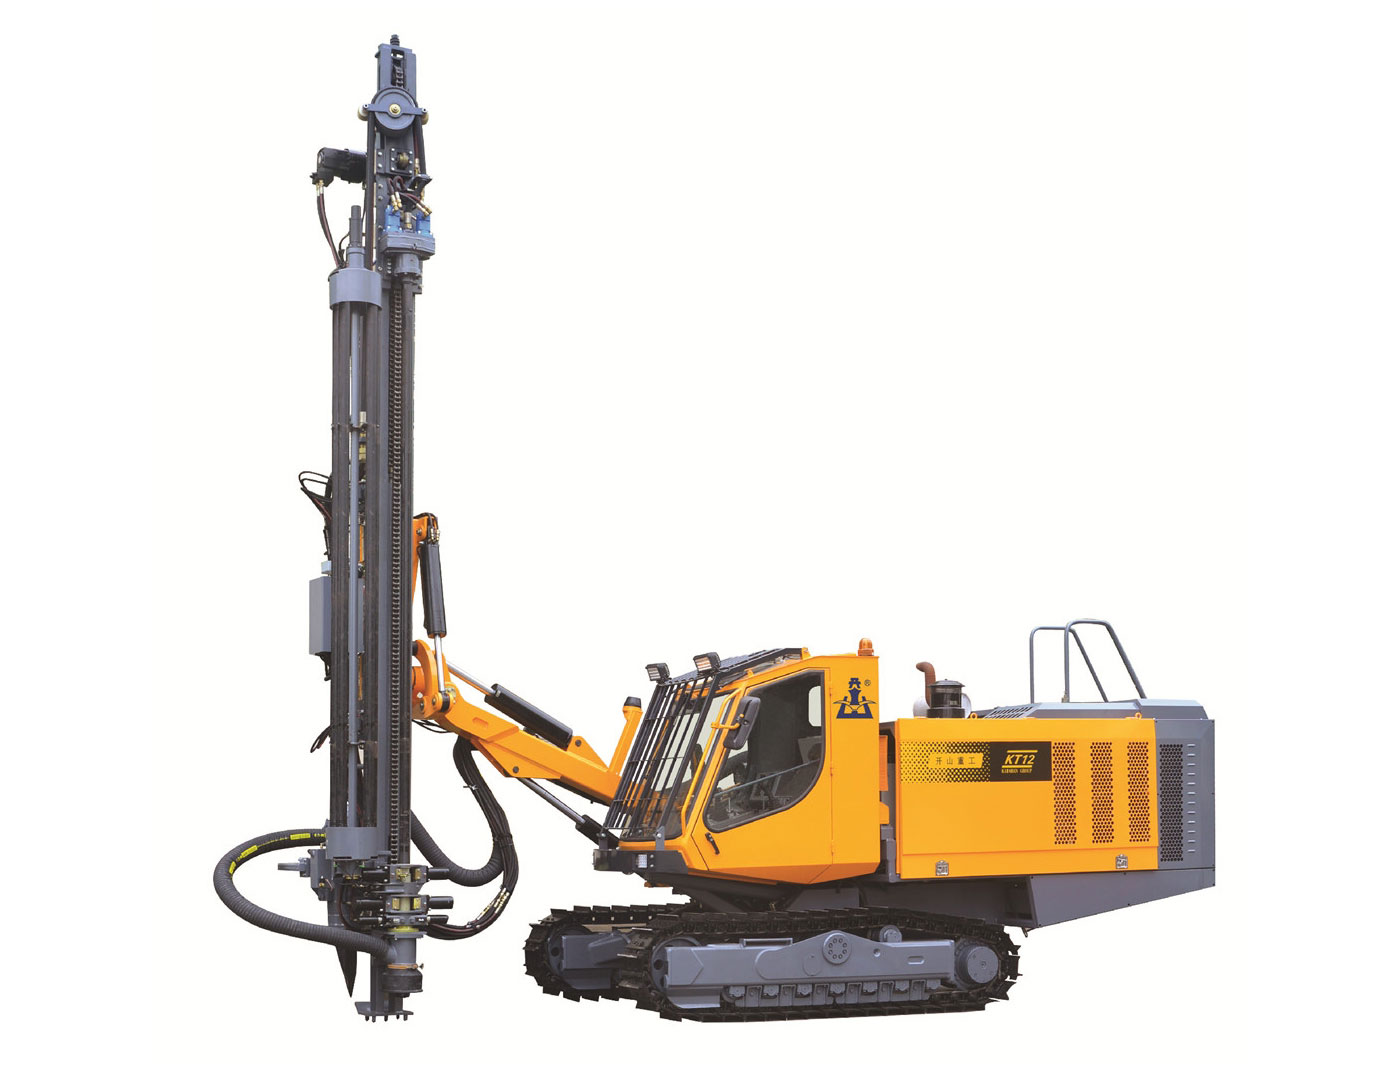 KAISHAN KT12 integrated drilling rig